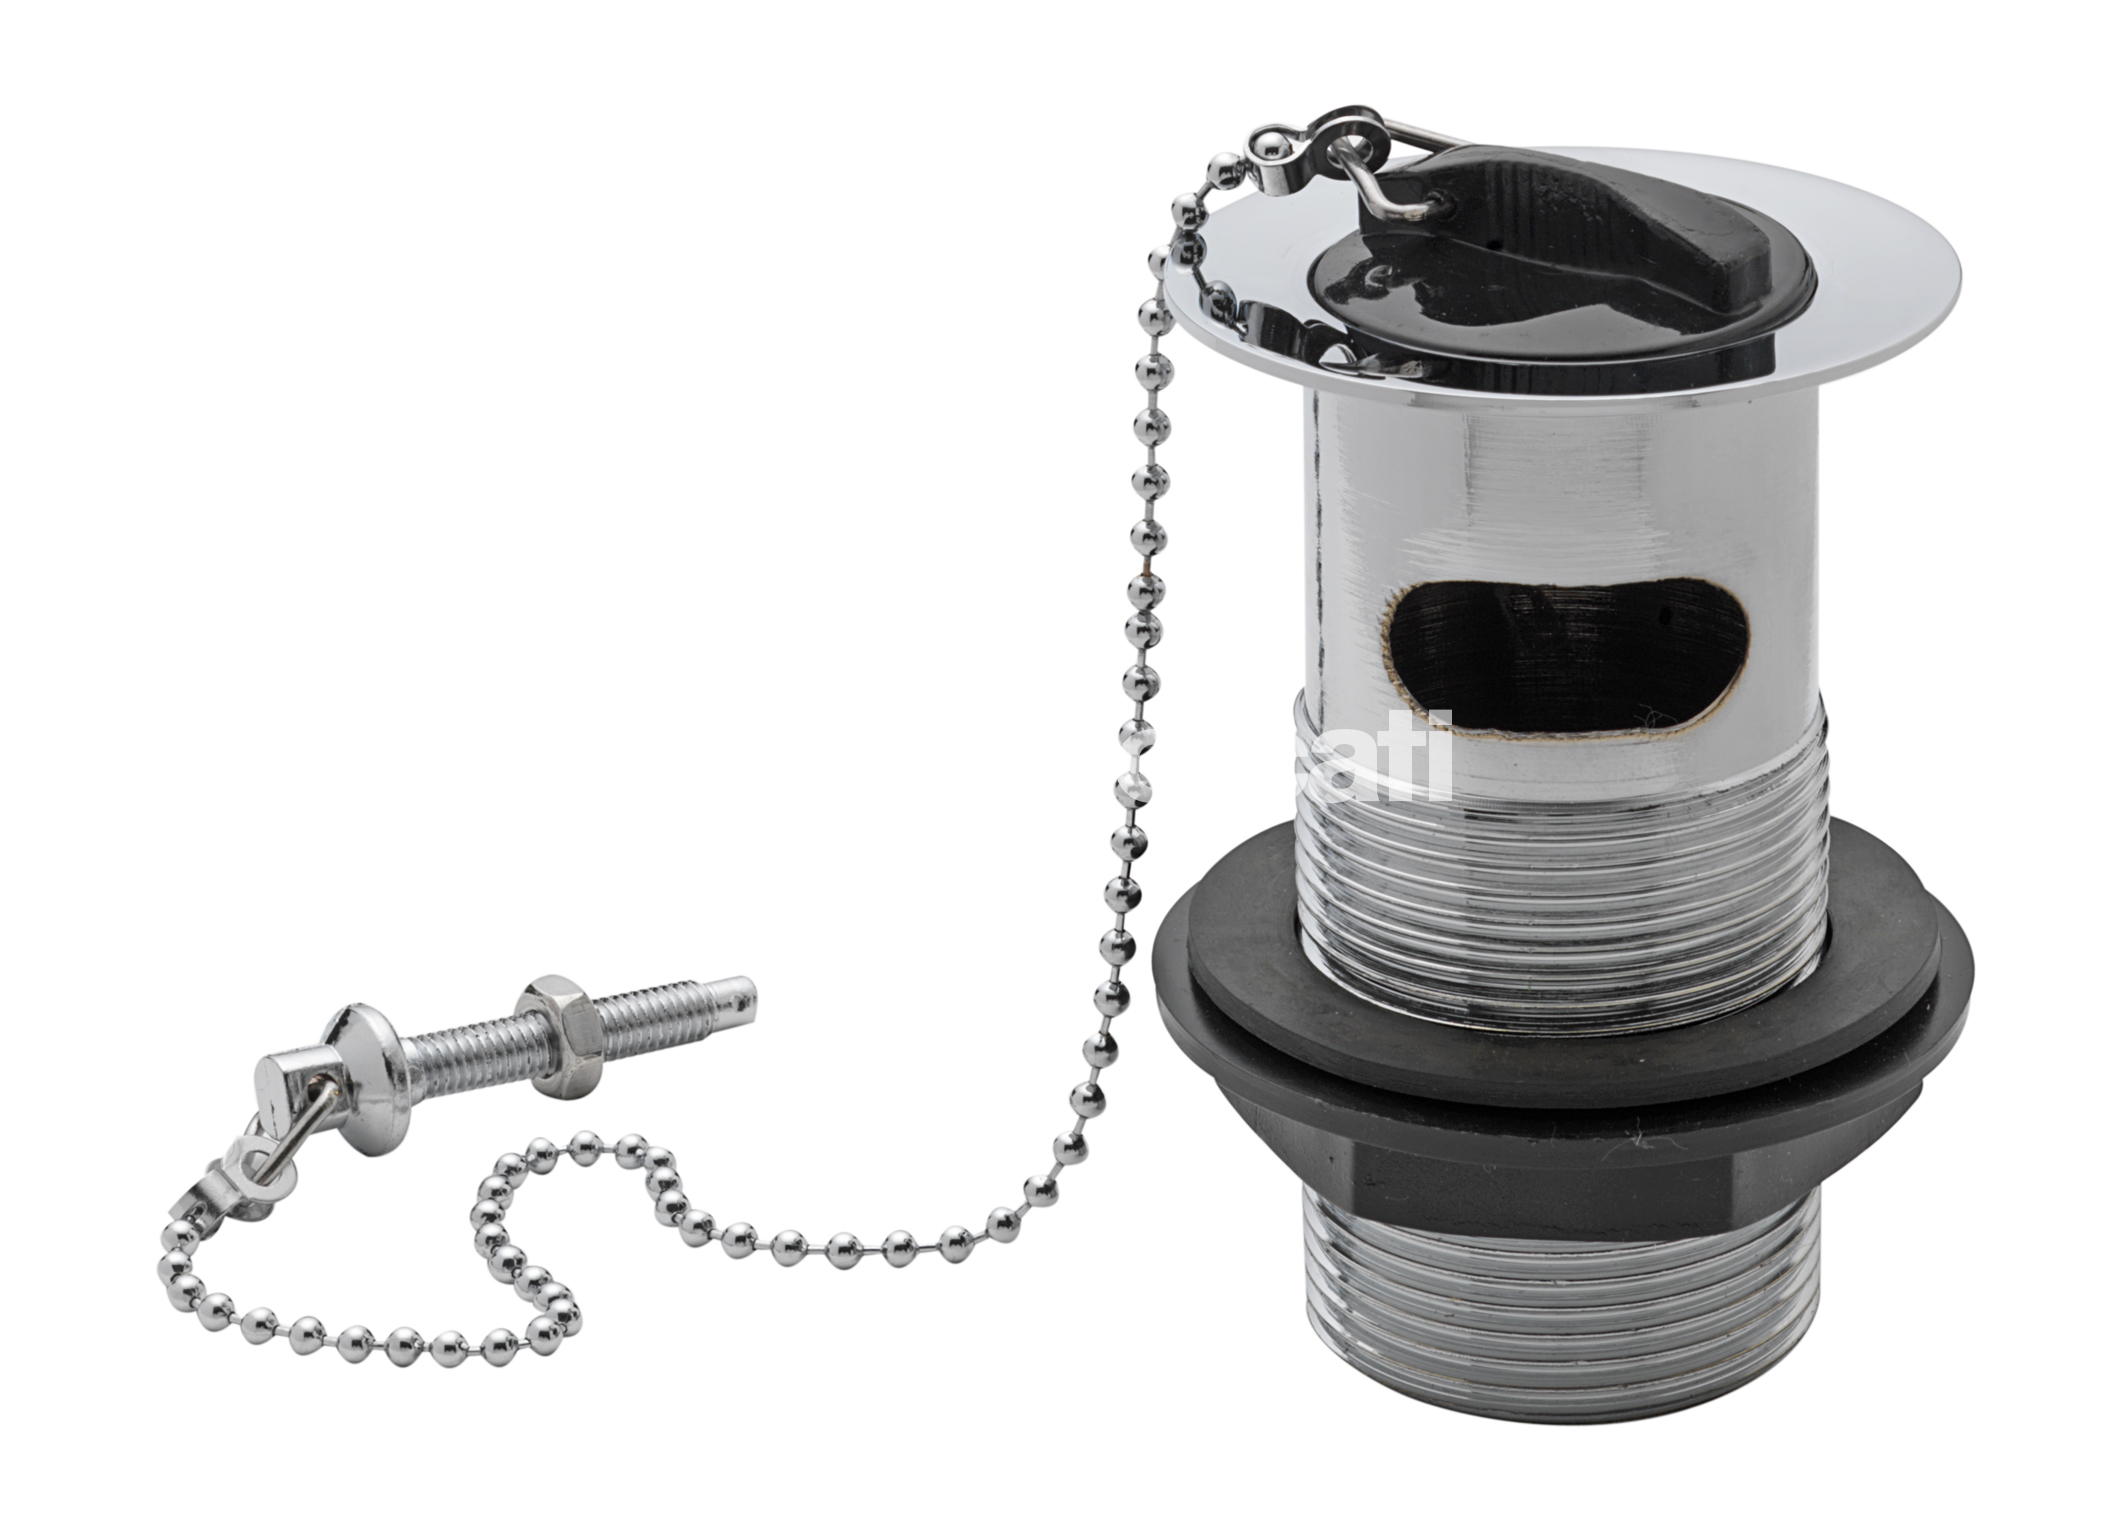 "TRE MERCATI 1 1/4"" BSP BRASS BASIN WASTE WITH RUBBER PLUG & BALL CHAIN - CHROME PLATED"